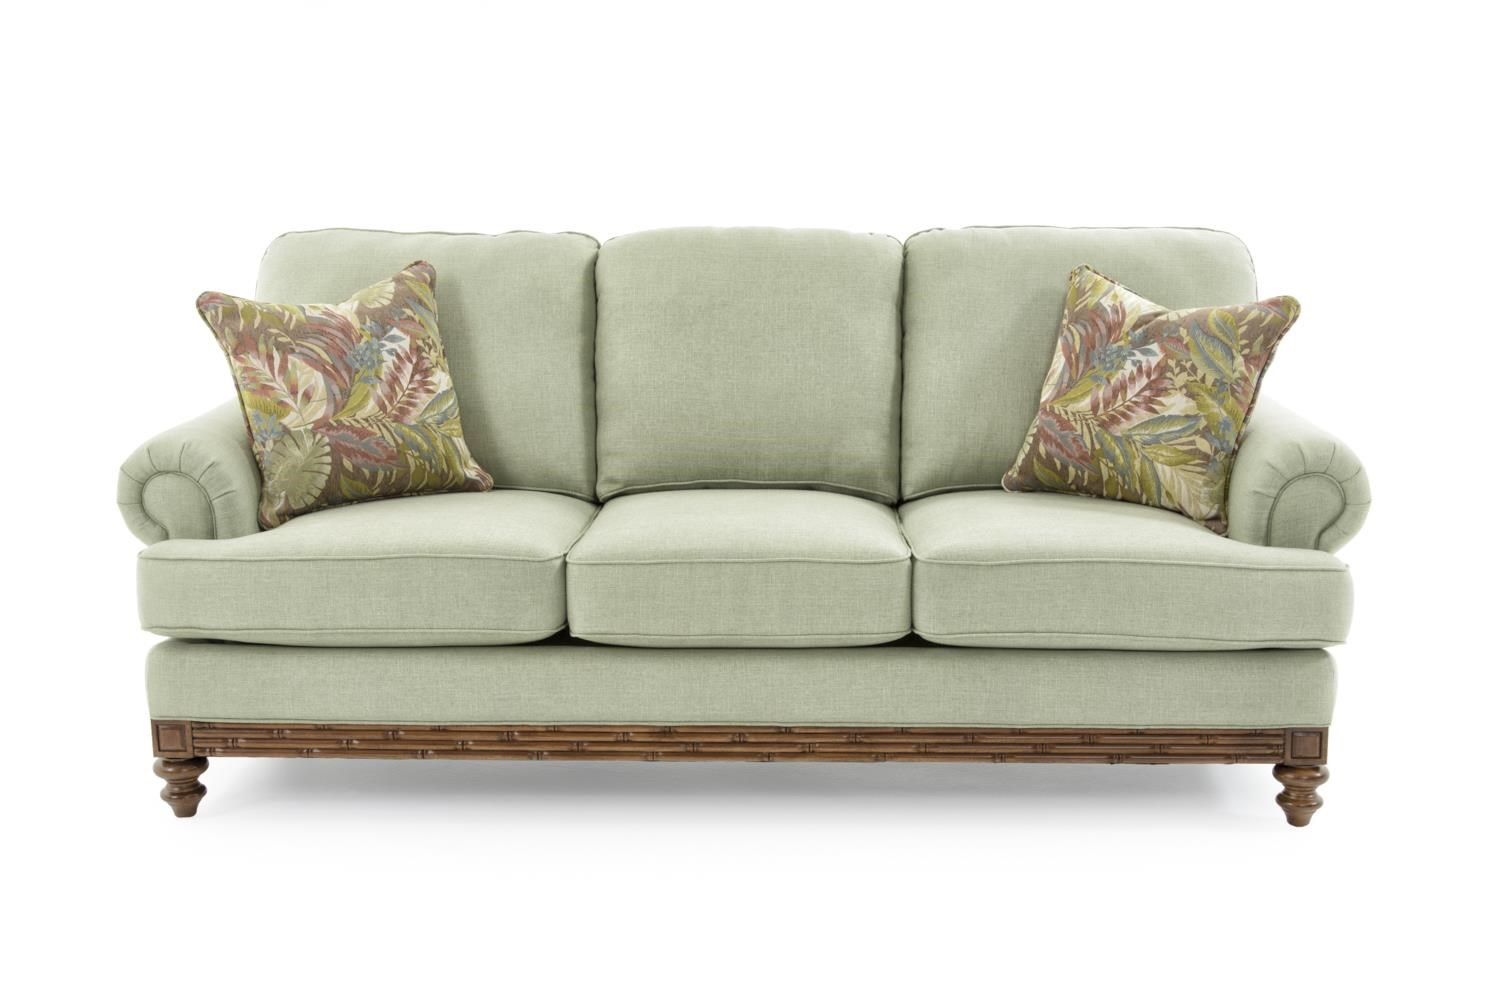 Synergy Home Furnishings 1526 Sofa - Item Number: 1526-00 4045-26